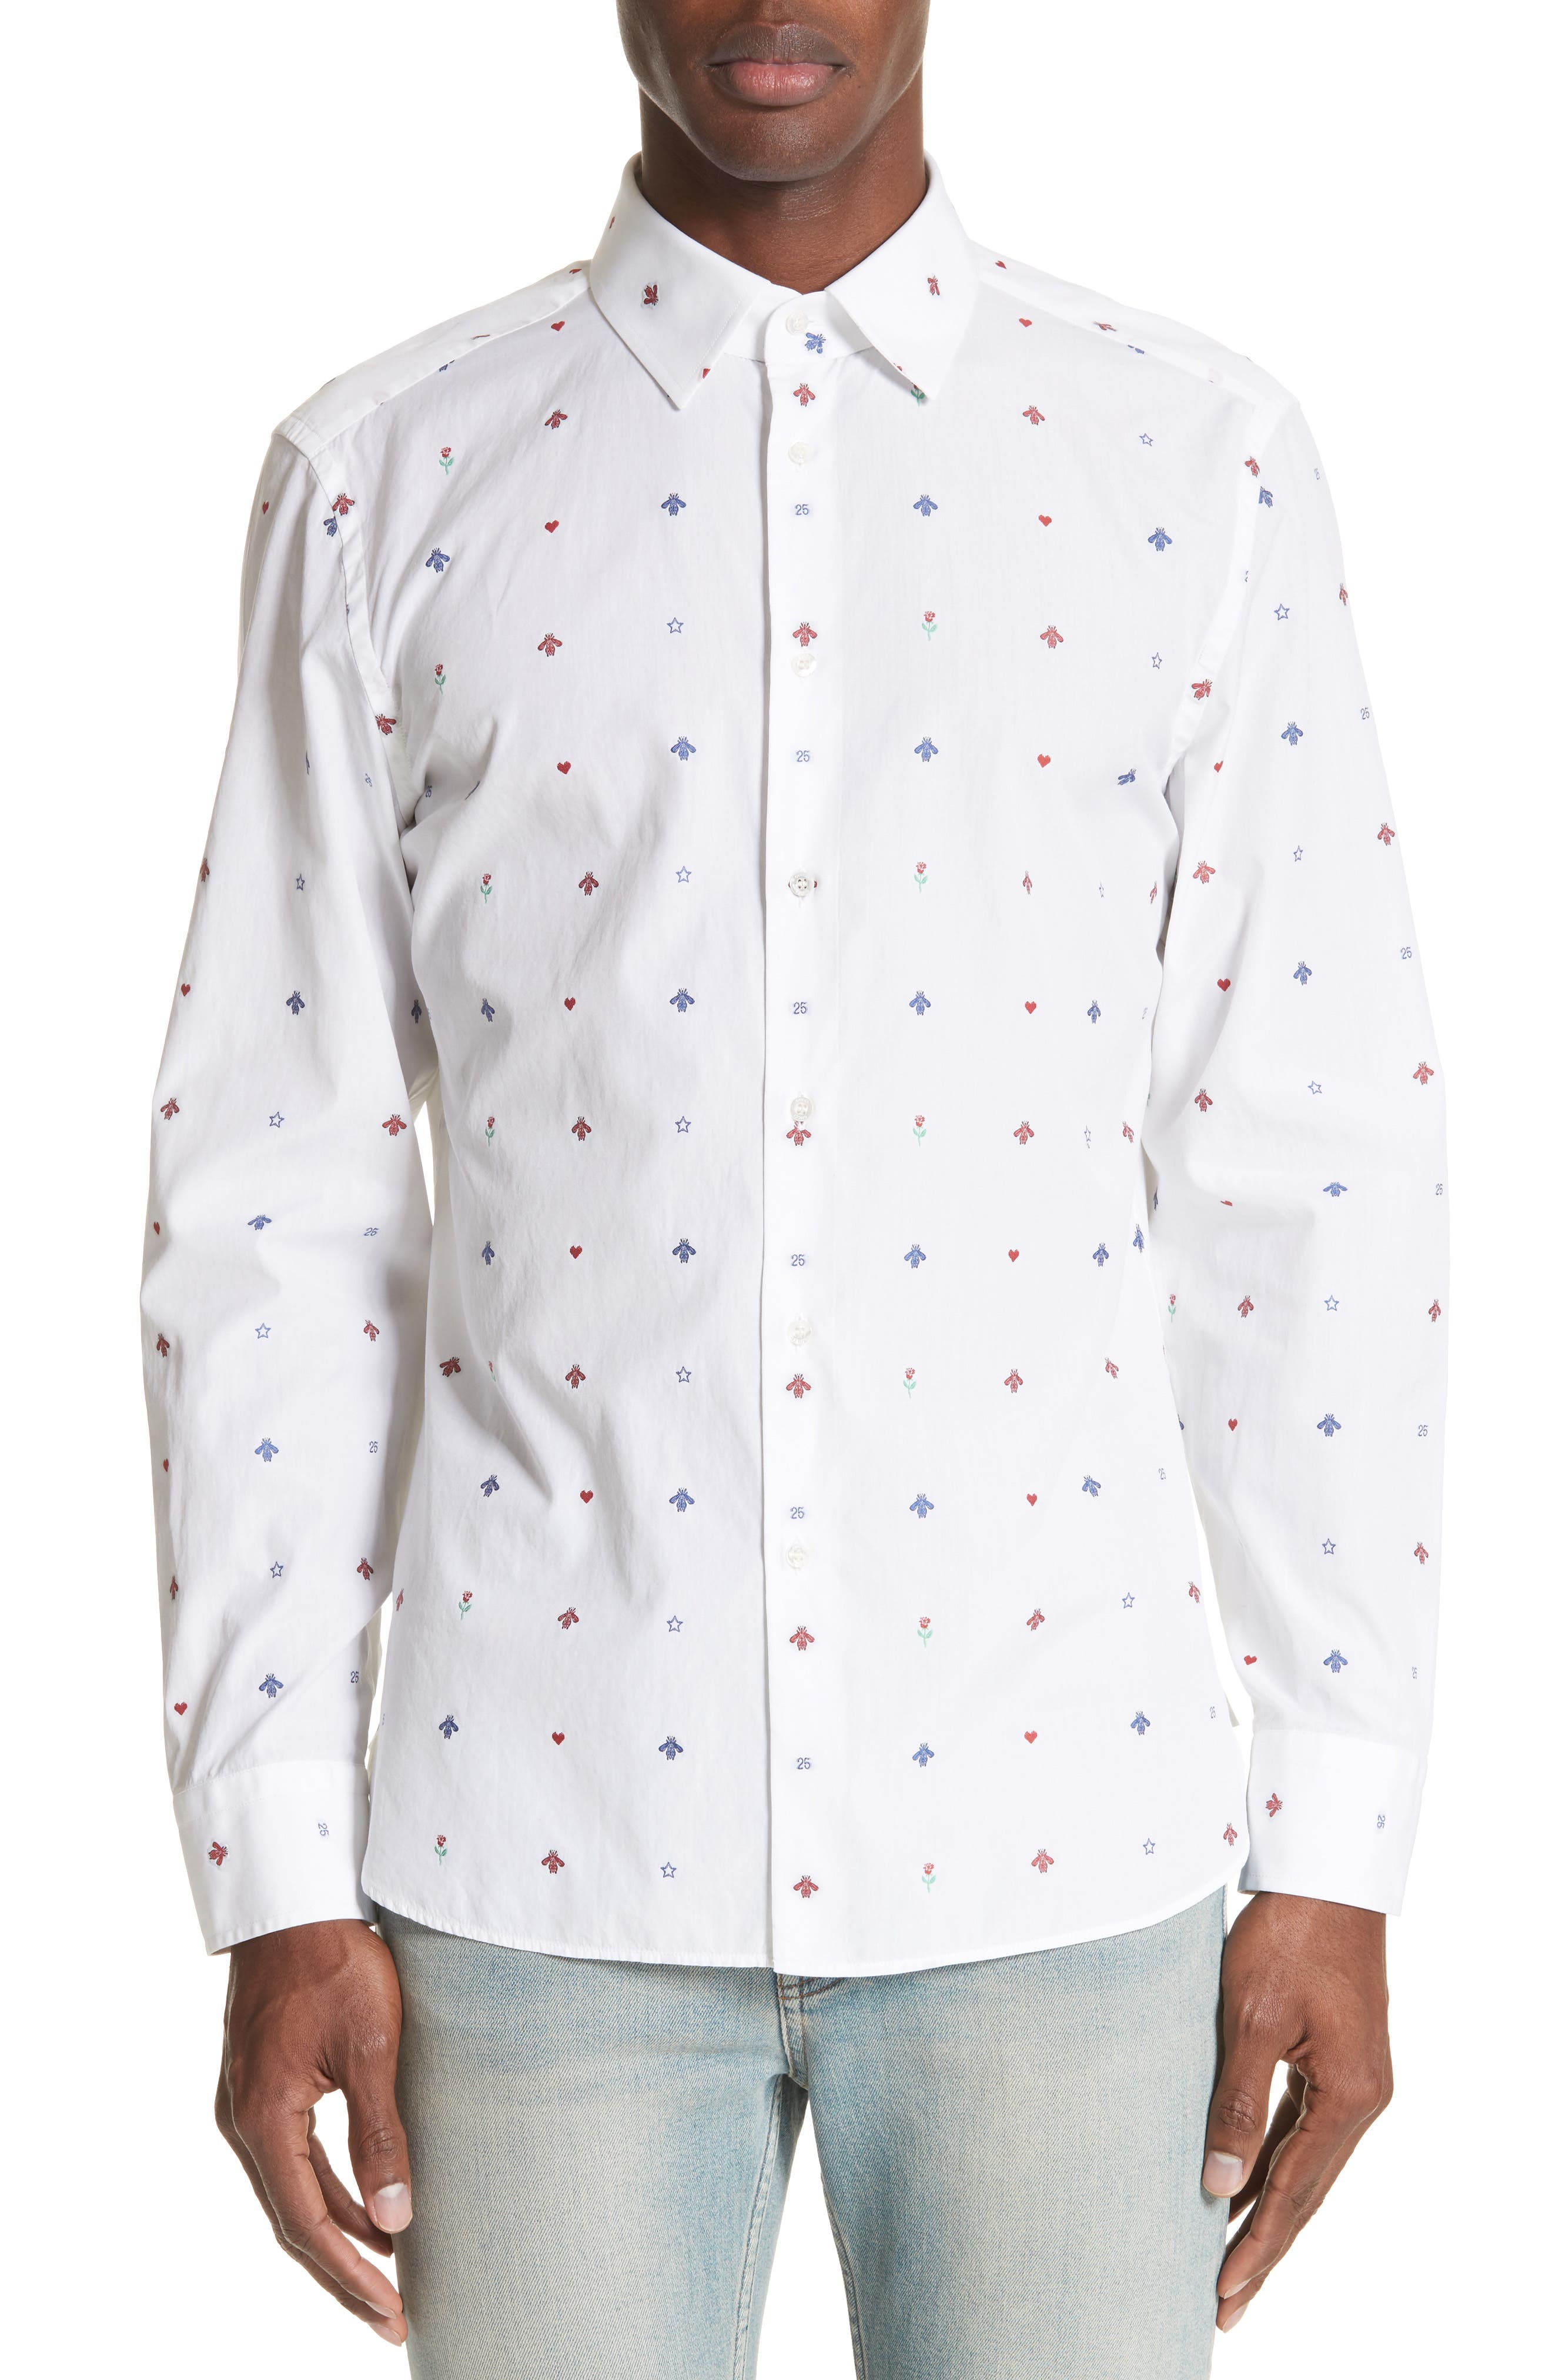 Alternate Image 1 Selected - Gucci Allover Bee Print Woven Shirt